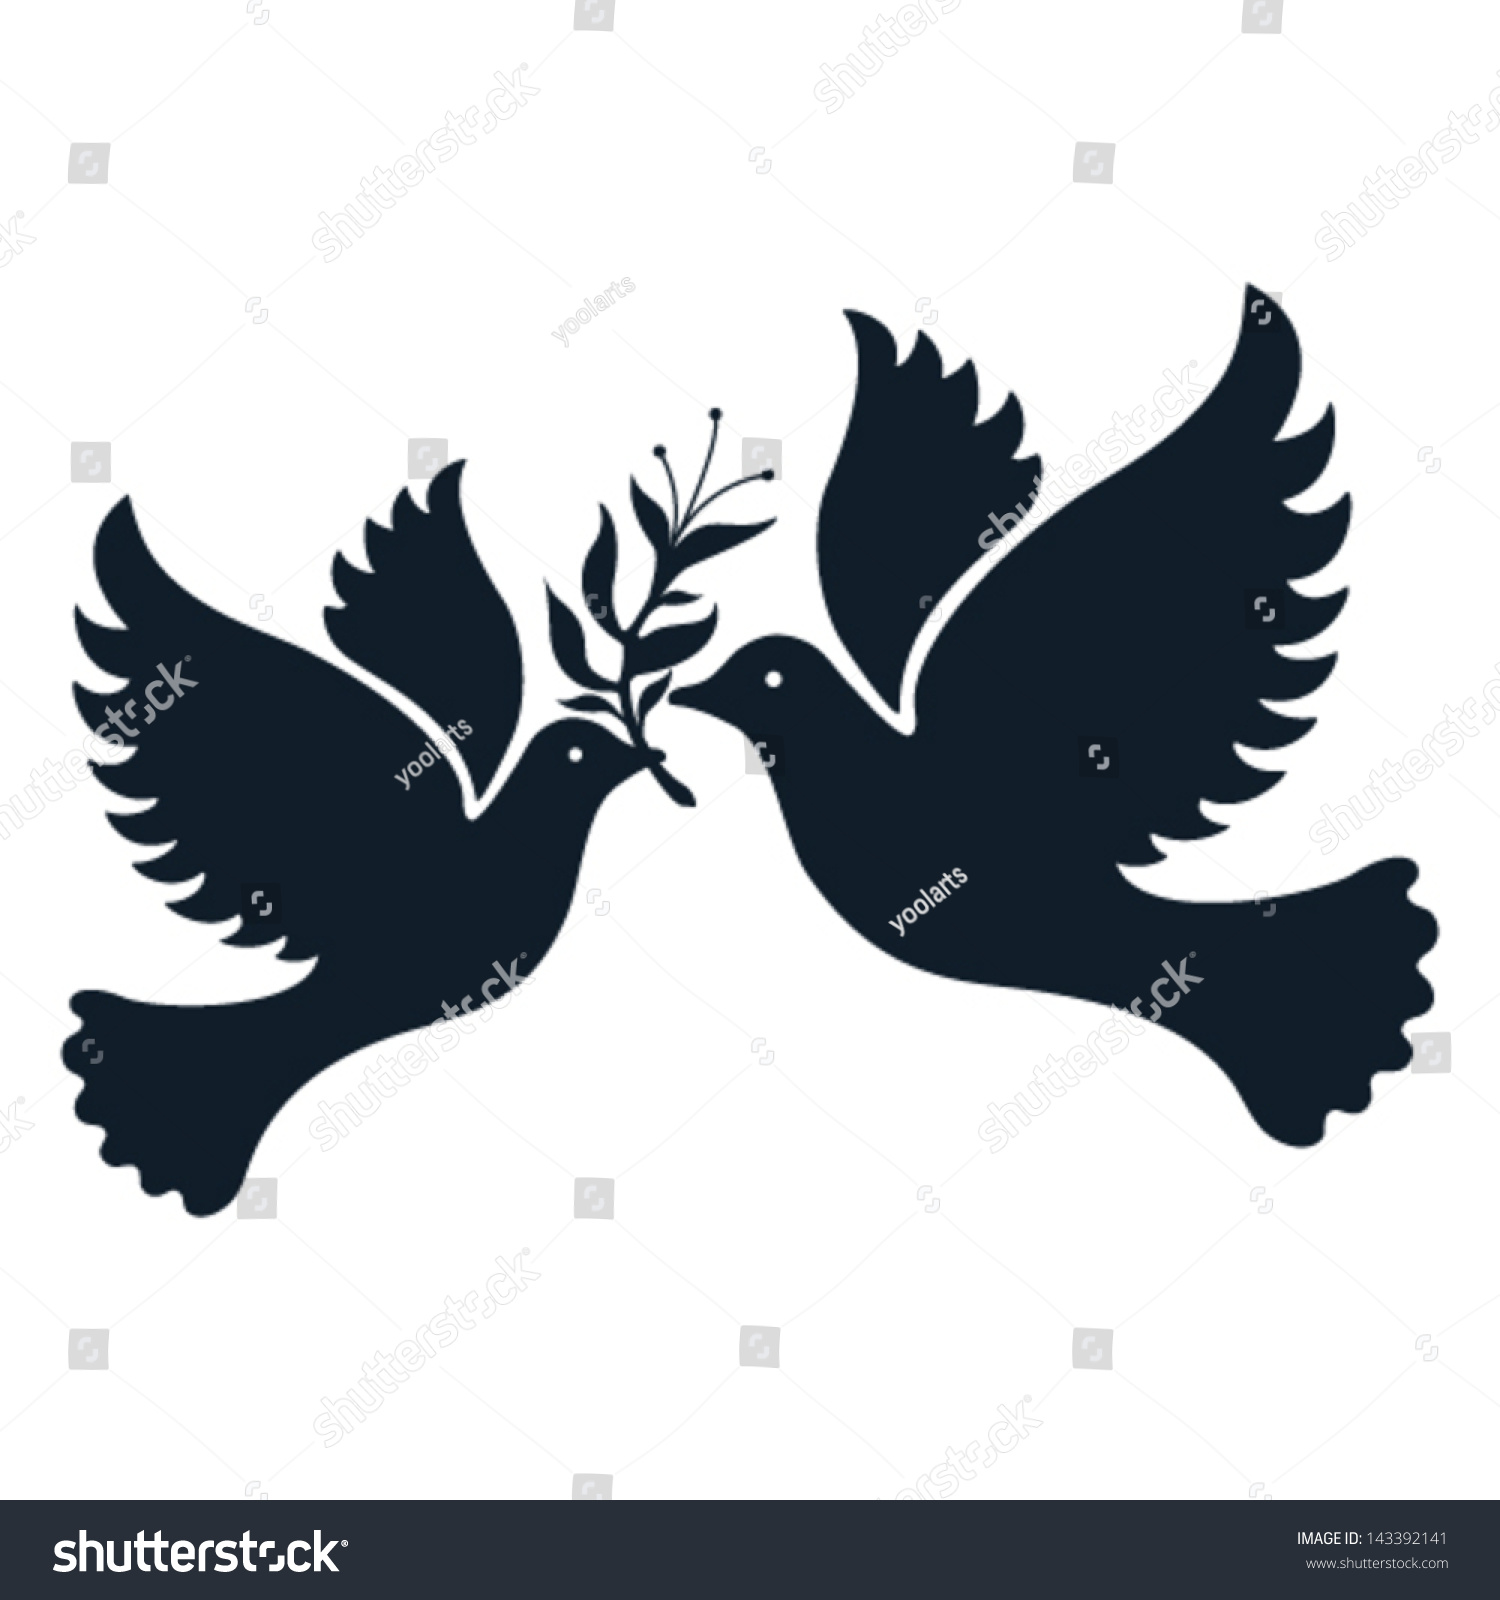 A Free Flying Vector White Dove Symbol. - 143392141 ...